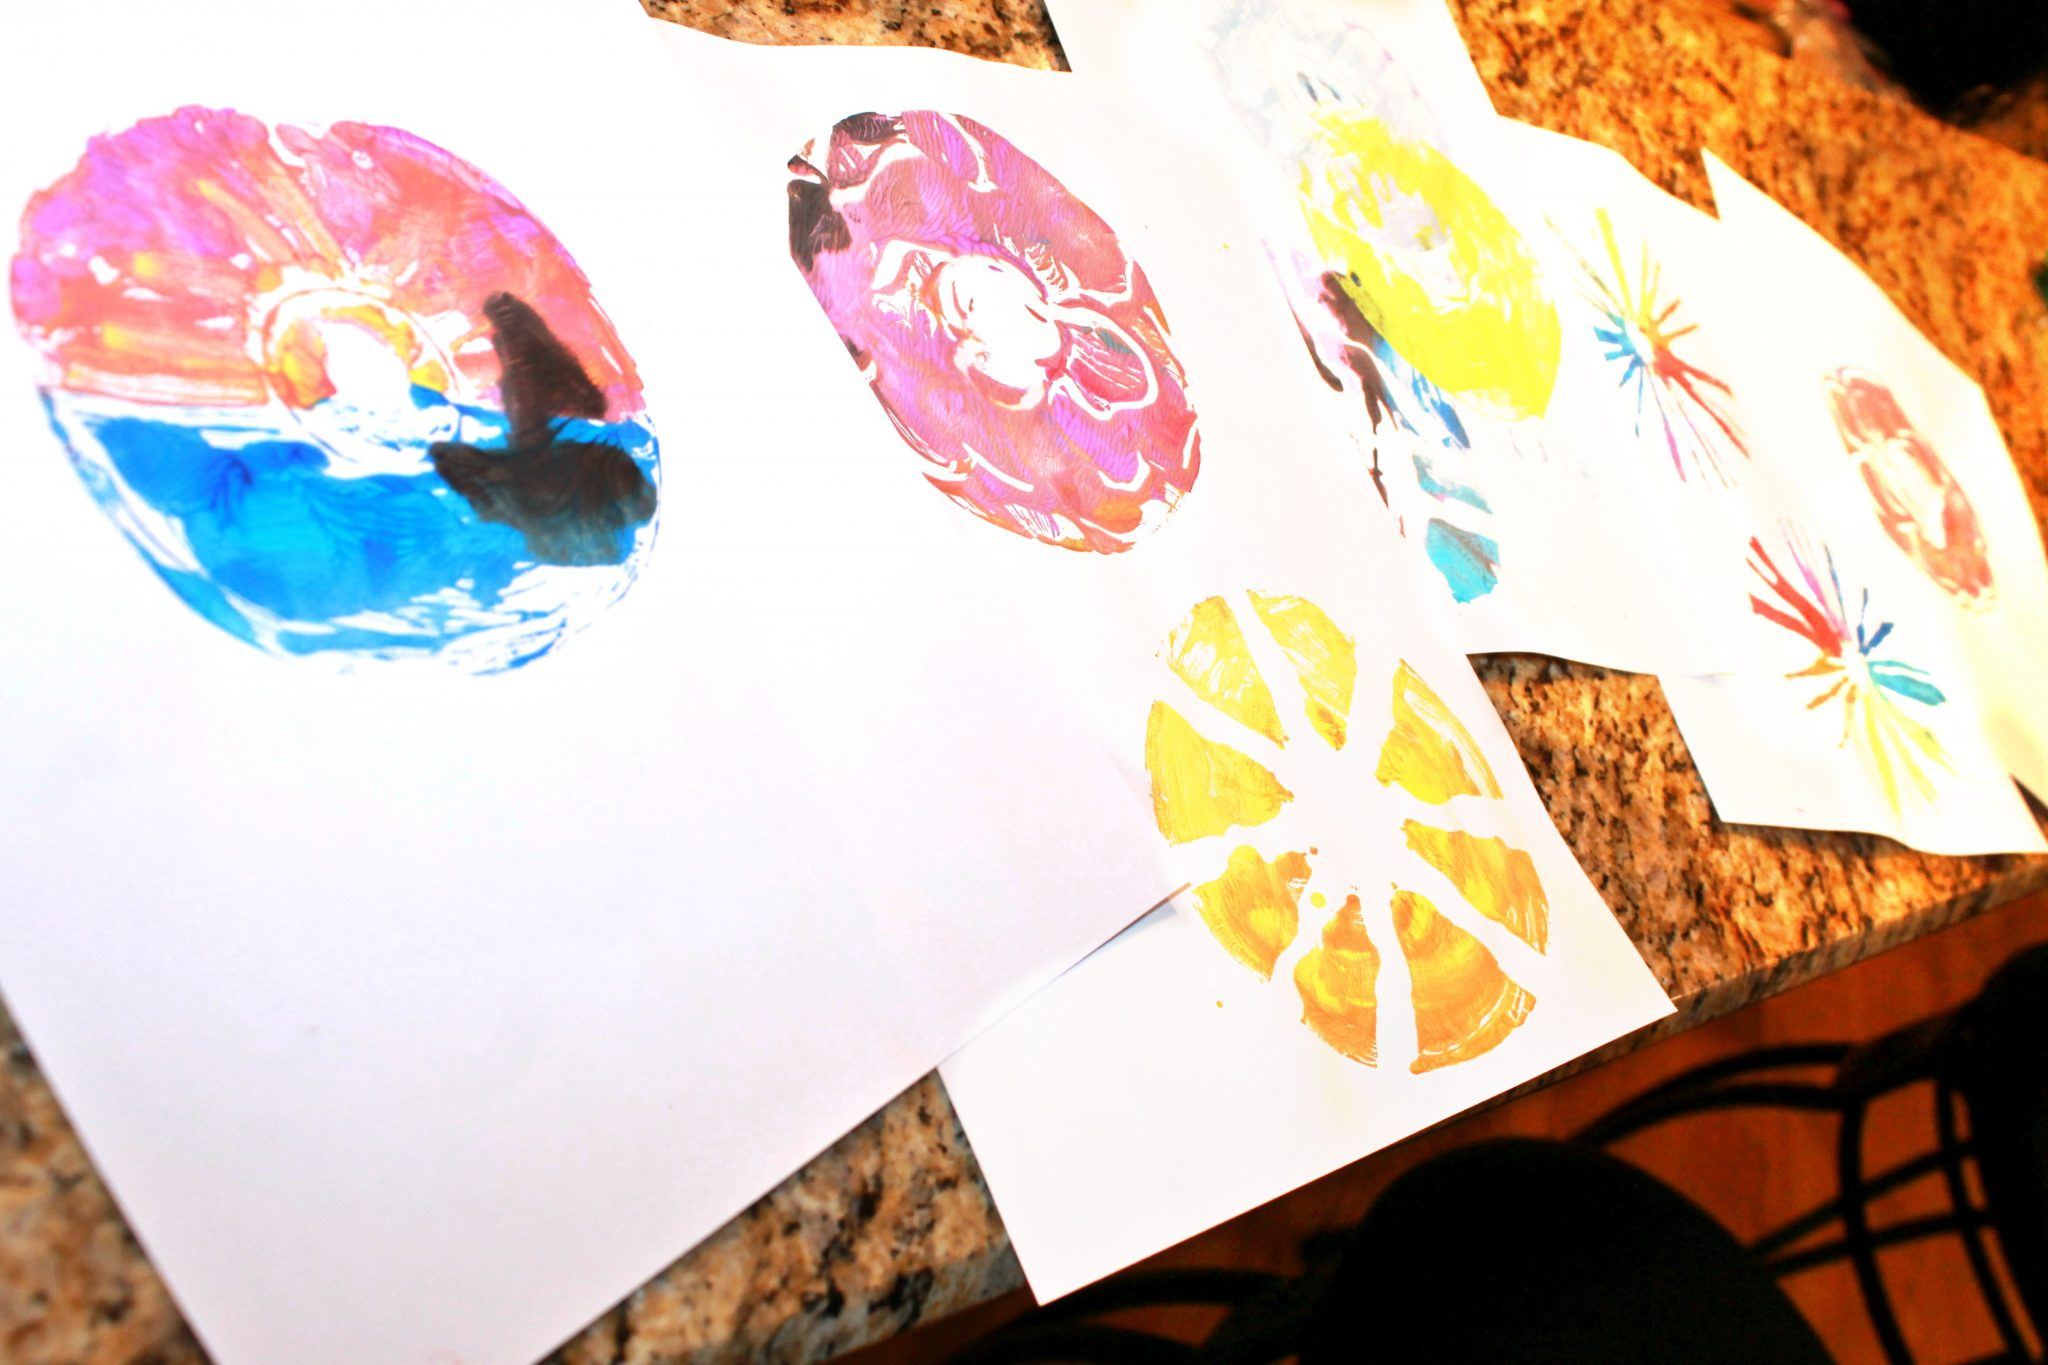 Cd Printmaking Techniques Using Paint , Yarn, Q Tips And Paint